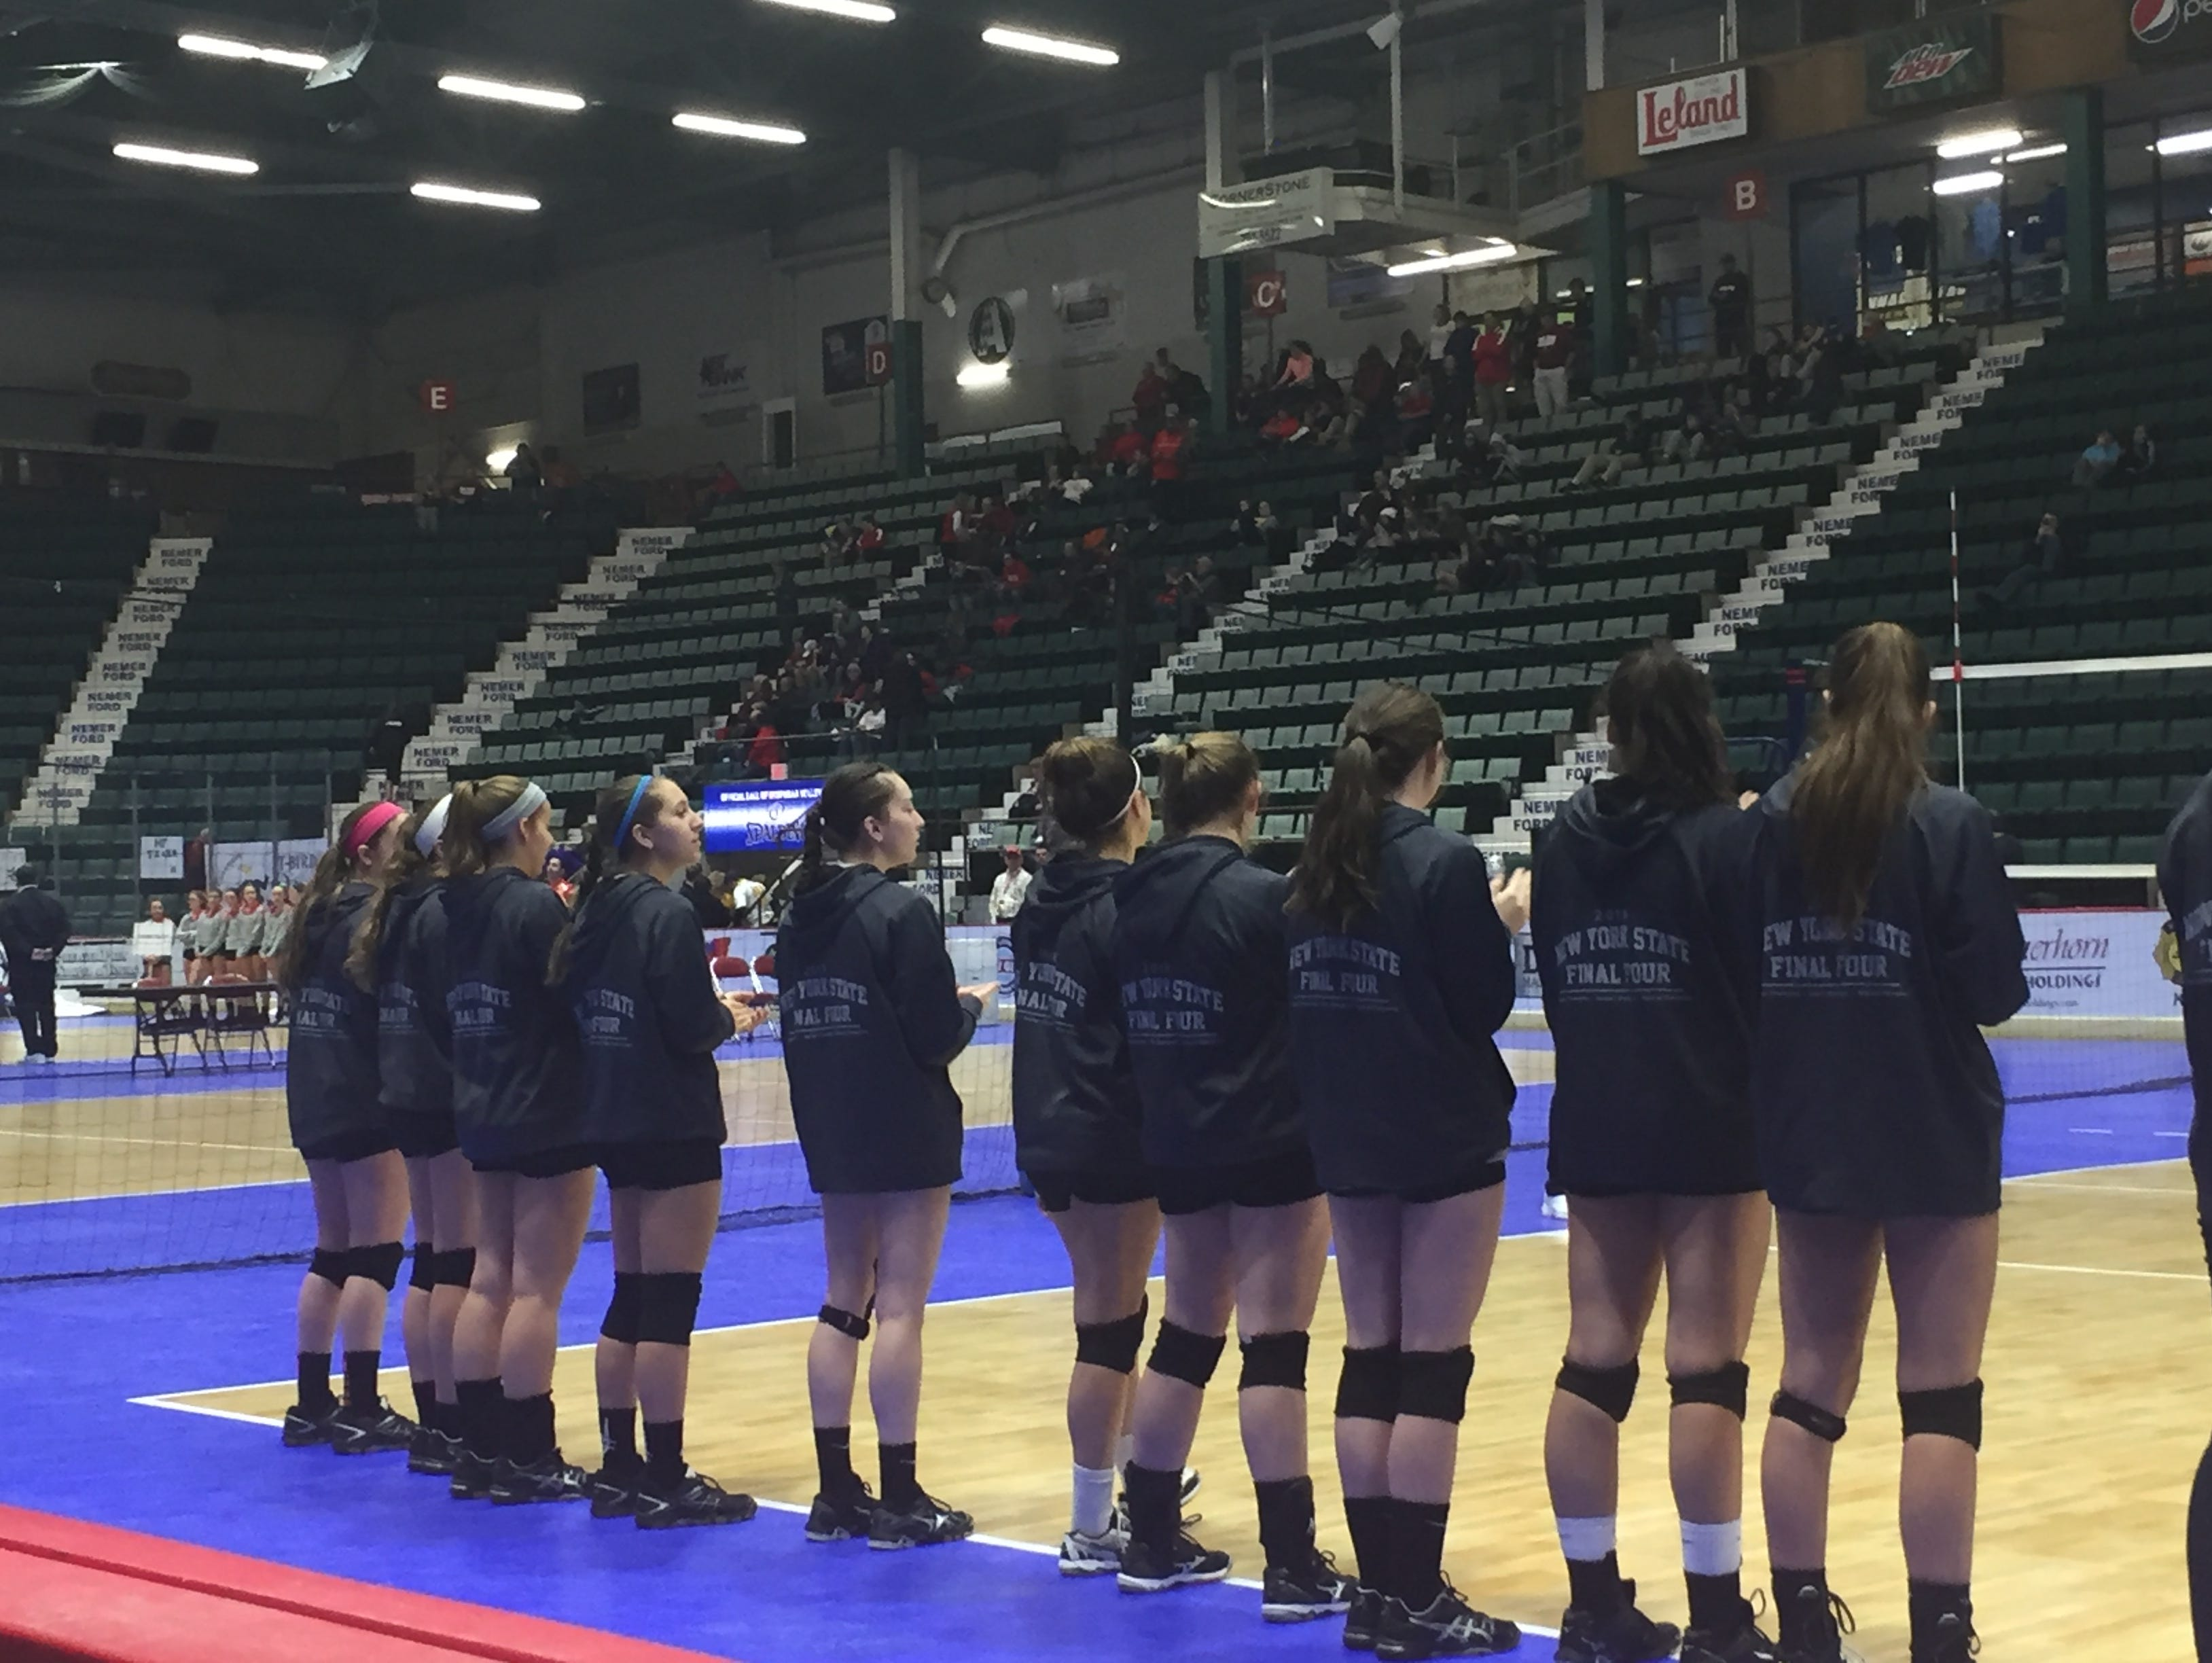 The Pawling High School volleyball players line up before the Class C state final